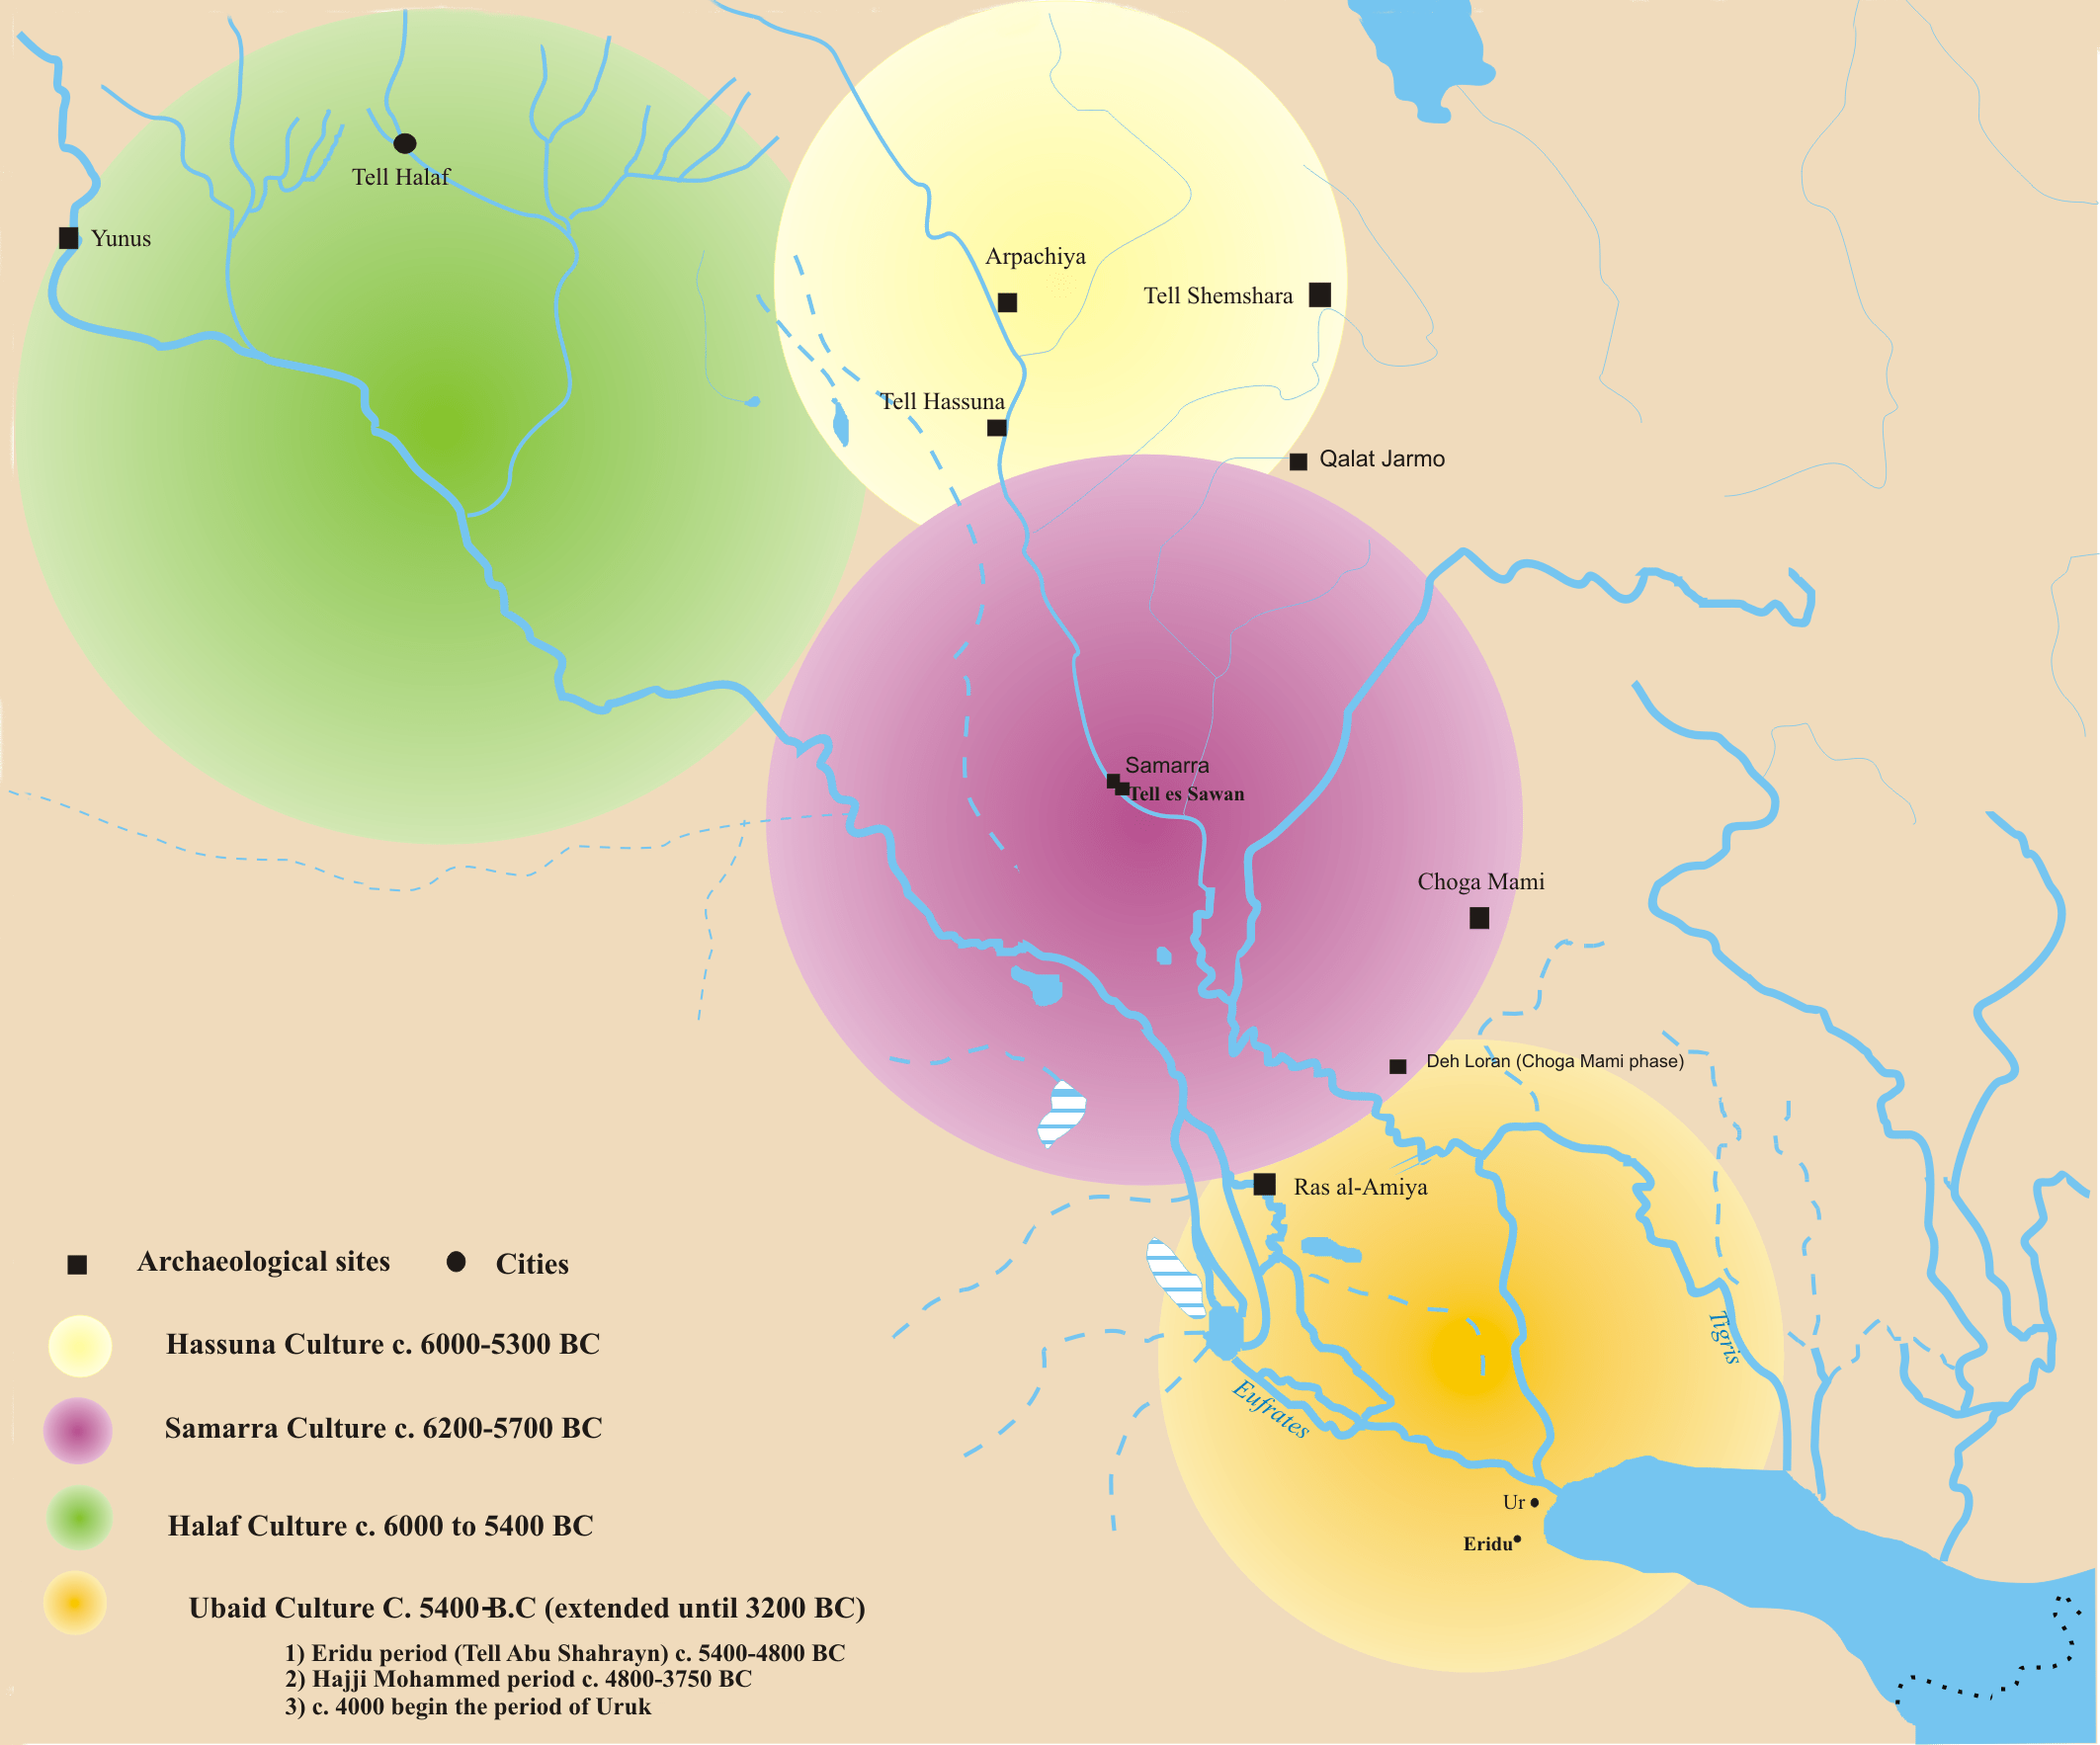 https://i1.wp.com/upload.wikimedia.org/wikipedia/commons/6/6b/Mesopotamia_6000-4500.png